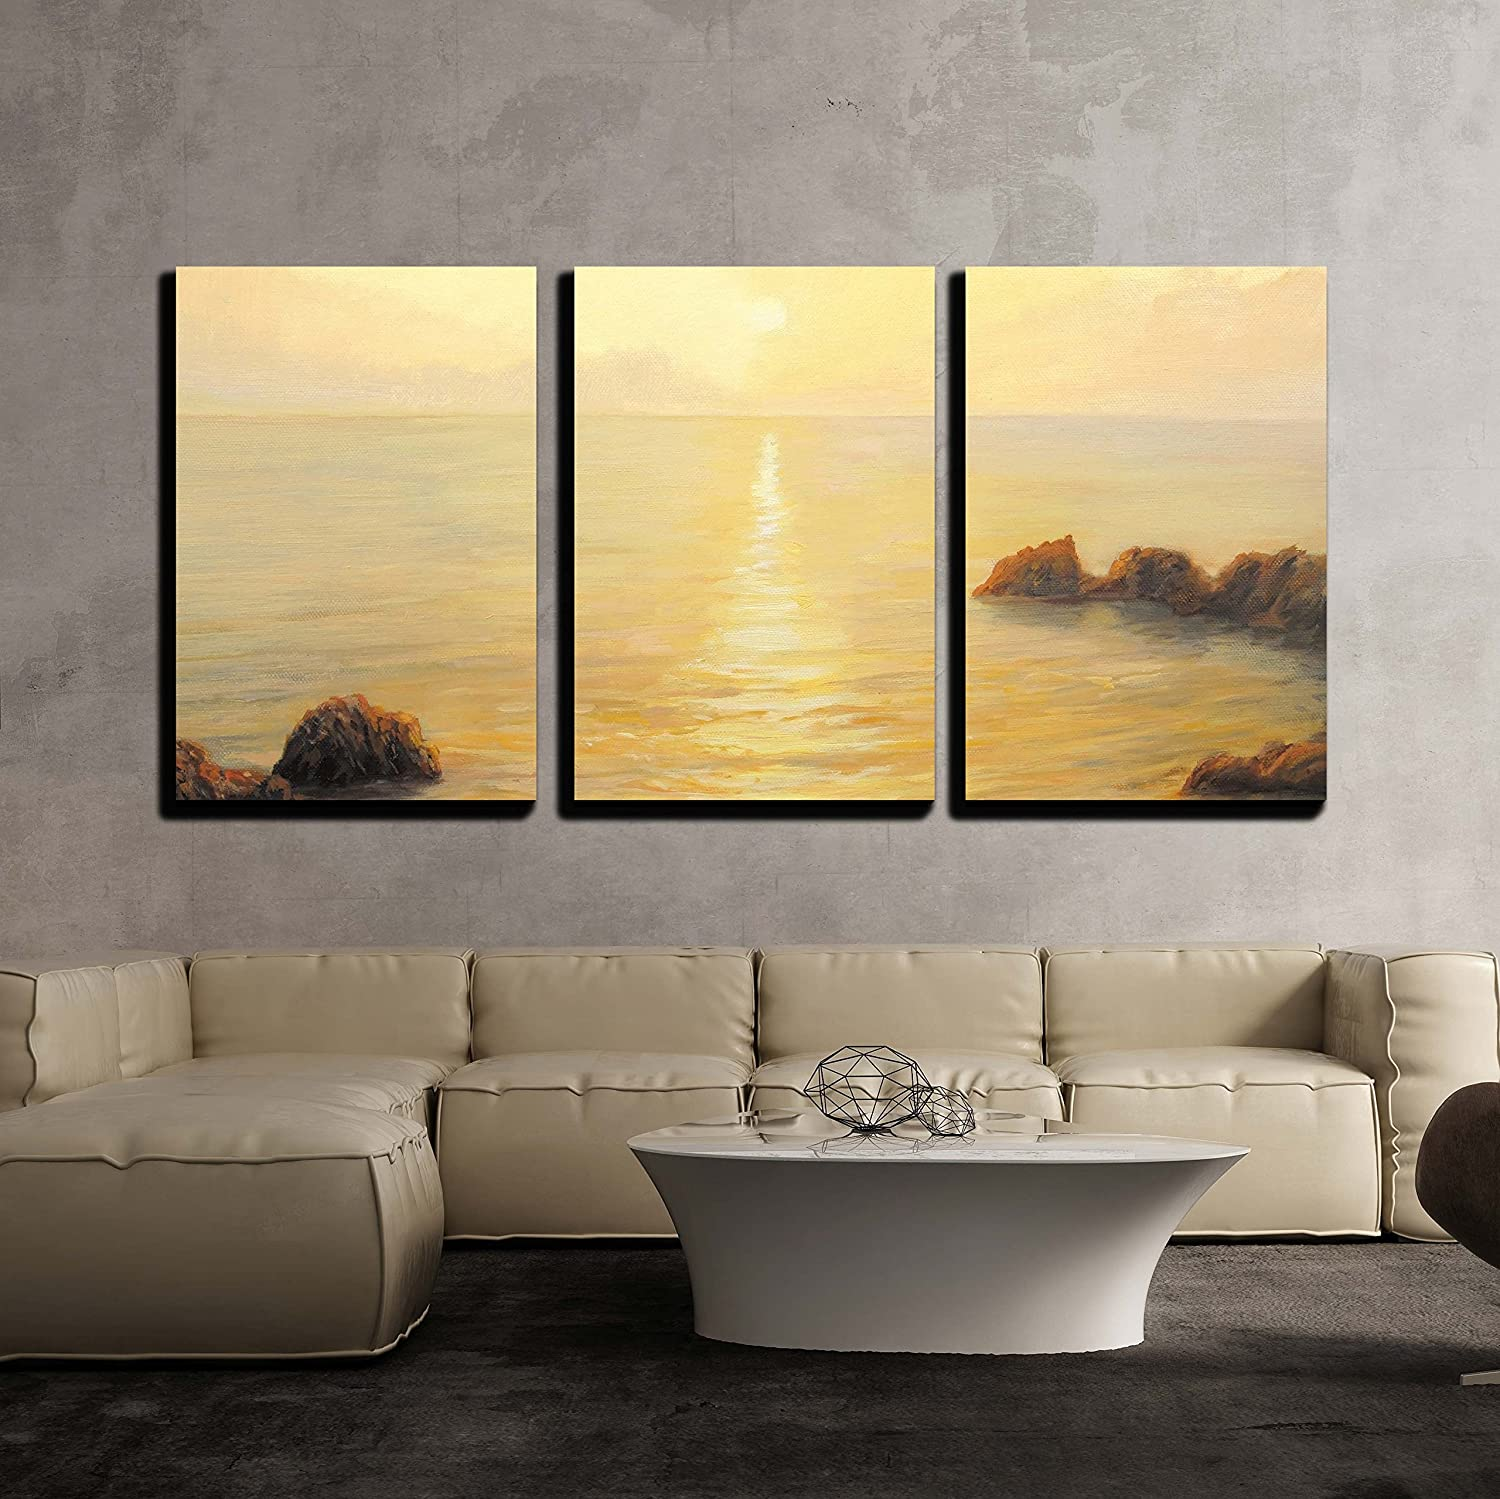 wall26 - 3 Piece Canvas Wall Art - Colorful Golden Sunrise with ...